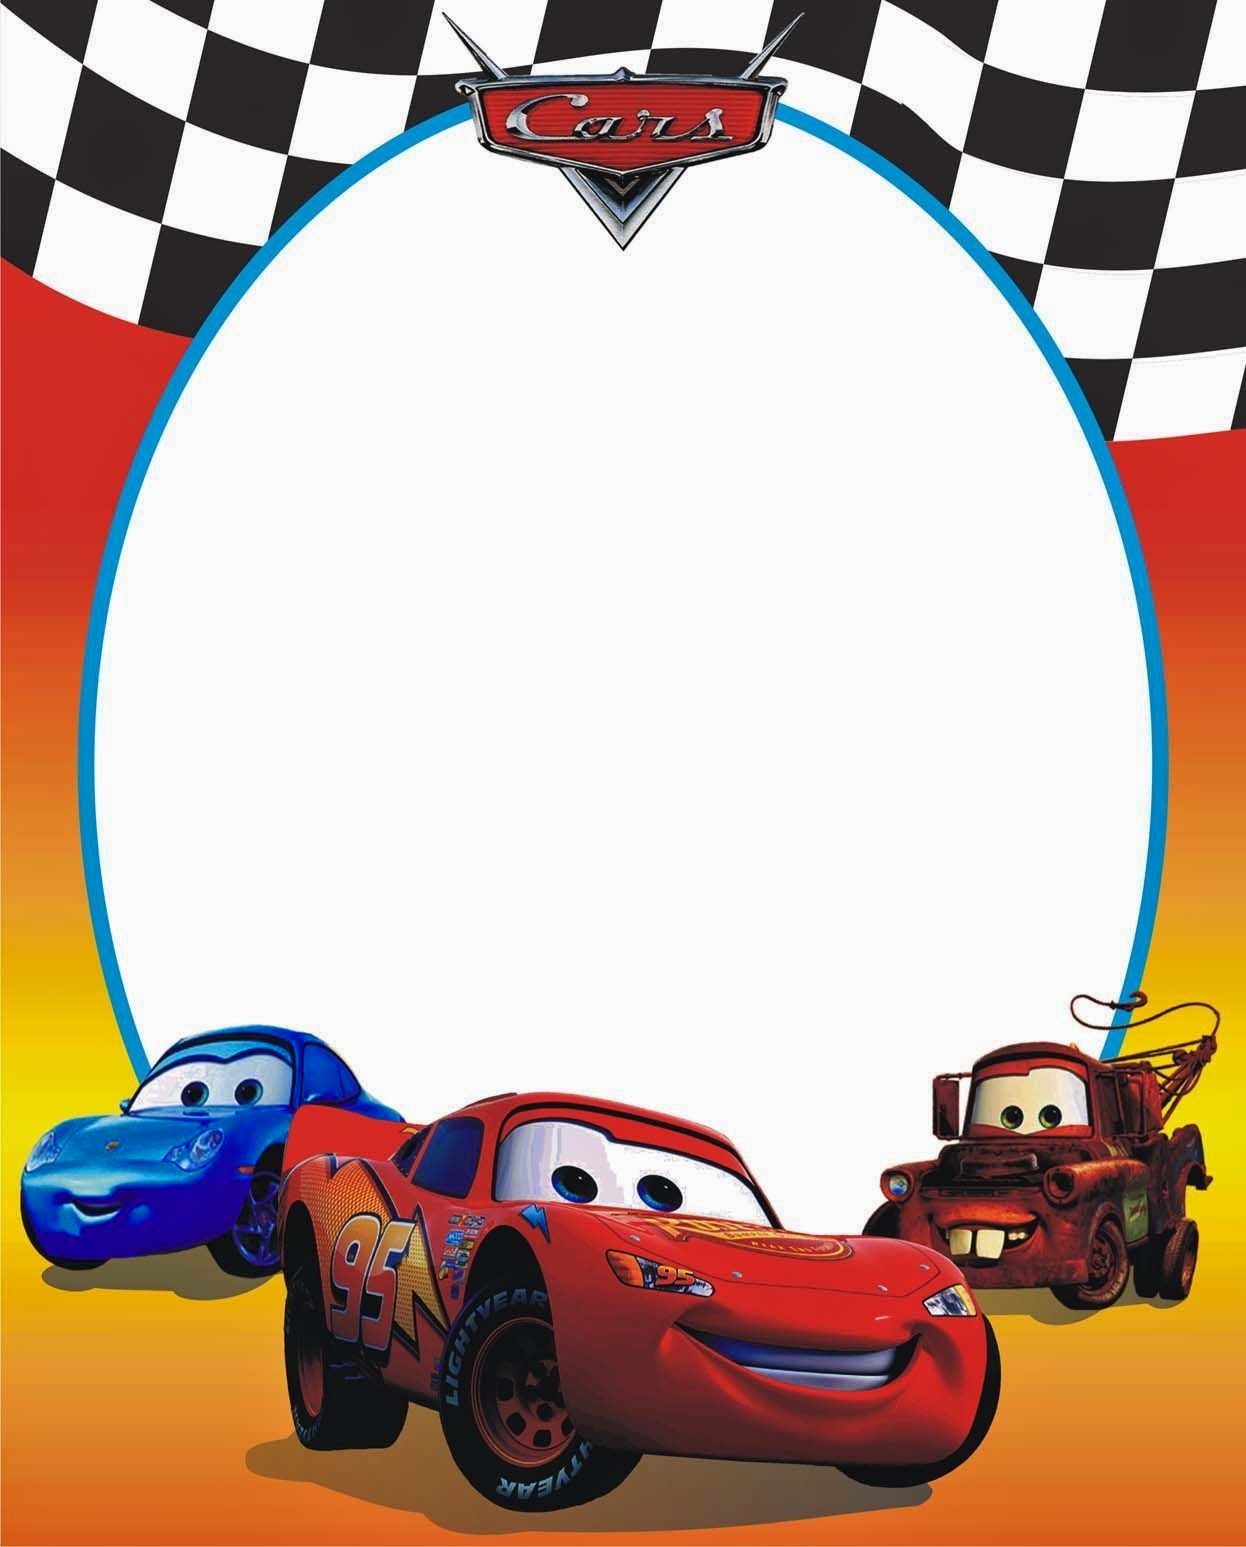 Cars Invitation Card Template Free: Cars: Free Printable Photo Frames.